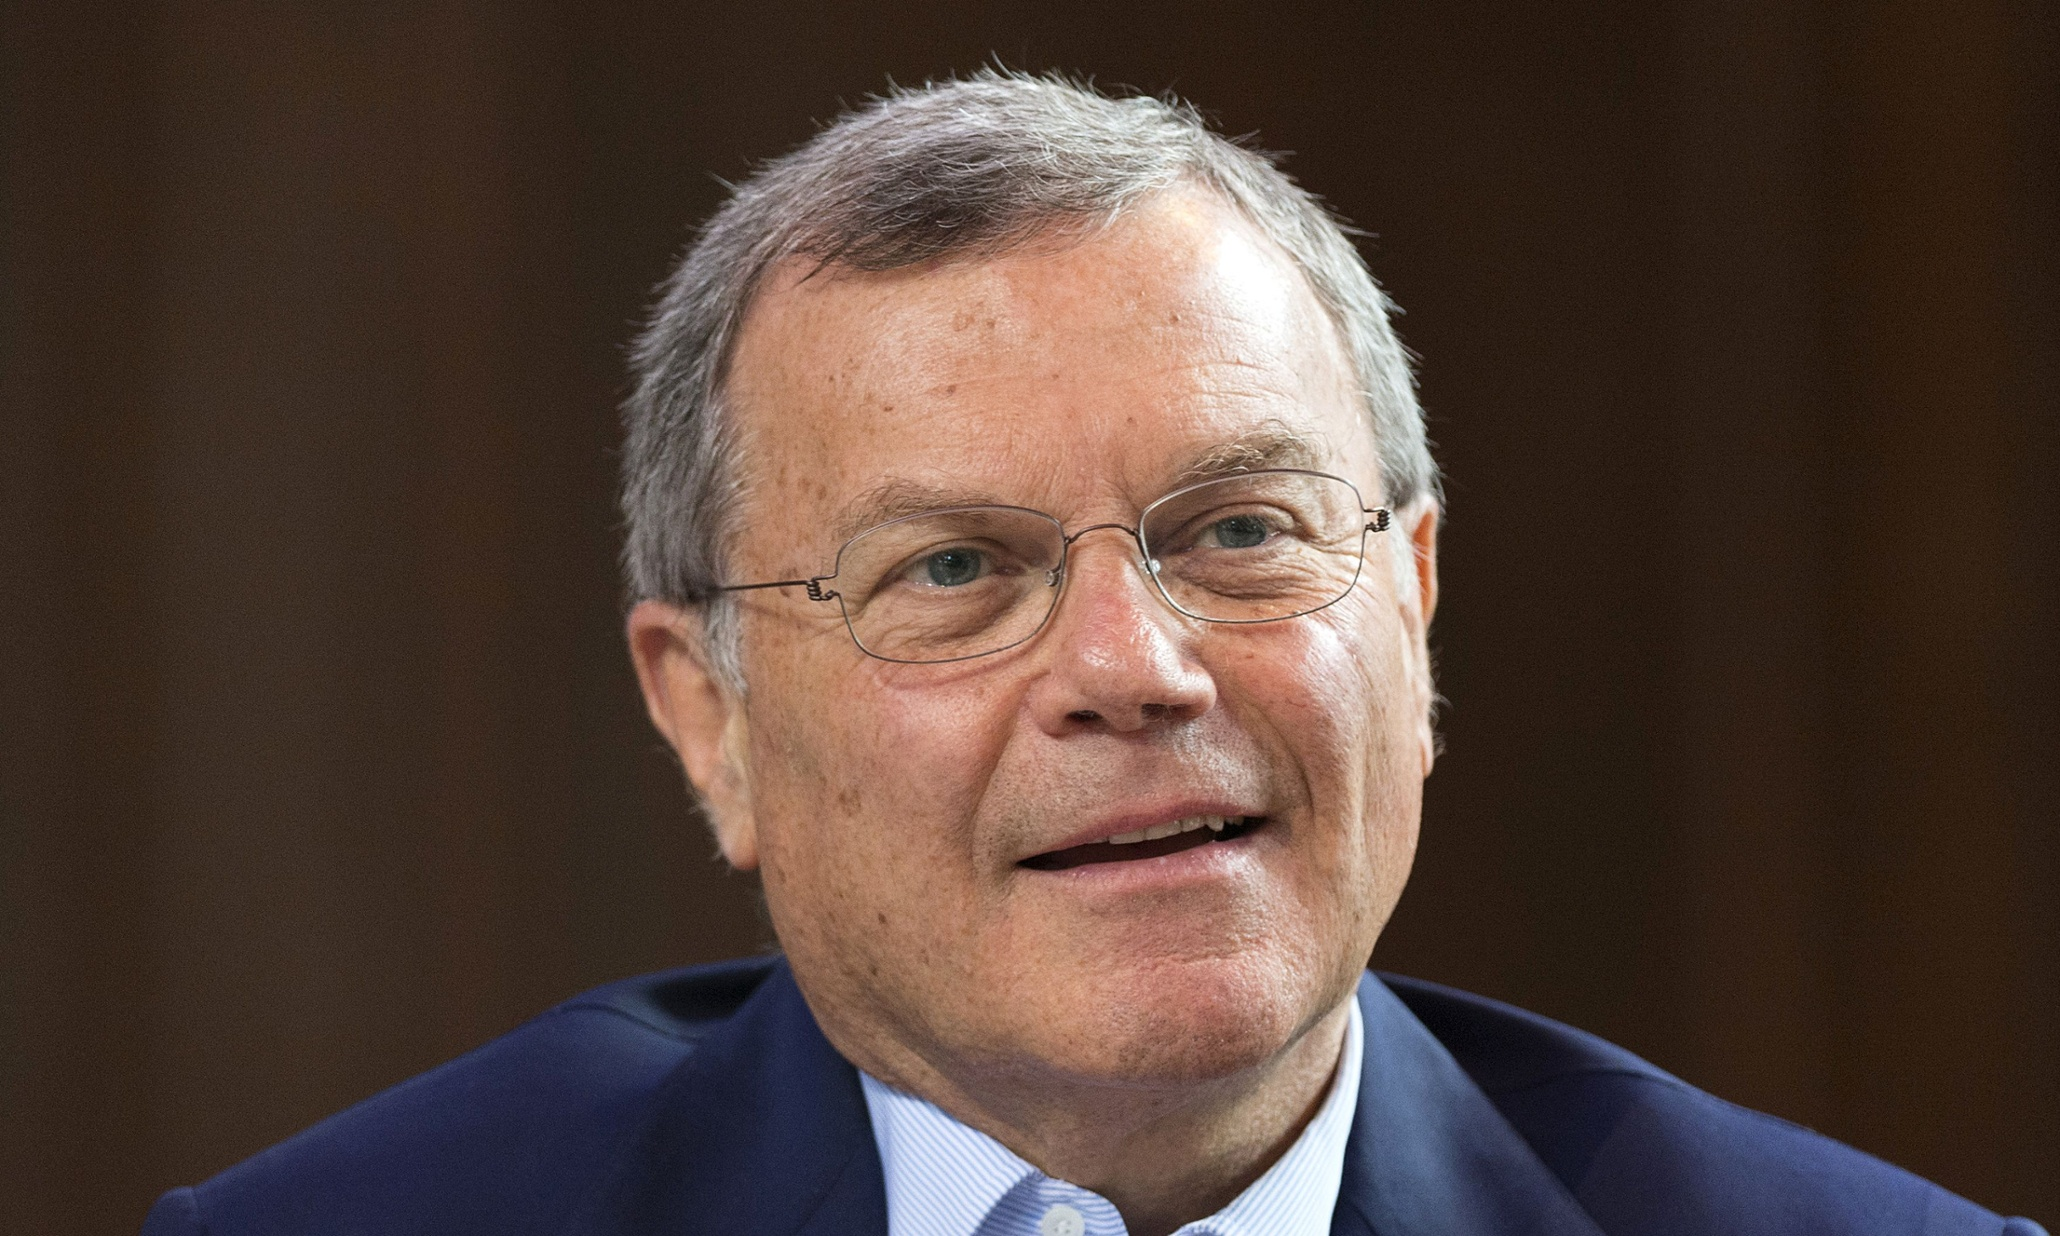 Daily Mail, WPP and Snapchat to launch native advertising agency